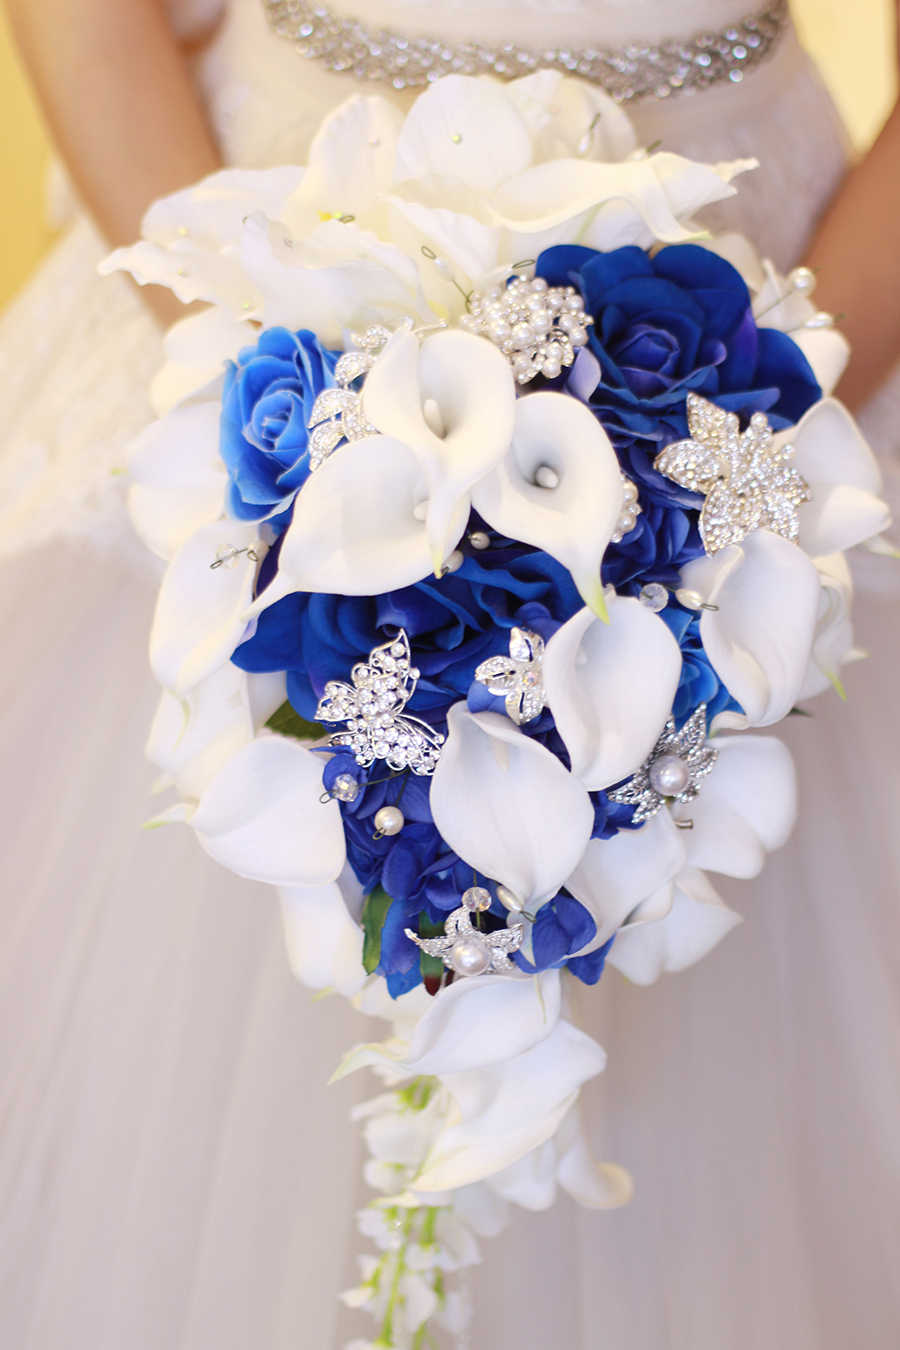 Waterfall Blue White Flower Wedding Bridal Bouquet Brooch Real Touch Artificial Fleur Mariage Pearls Crystal Brides Bouquet Wedding Bouquets Aliexpress